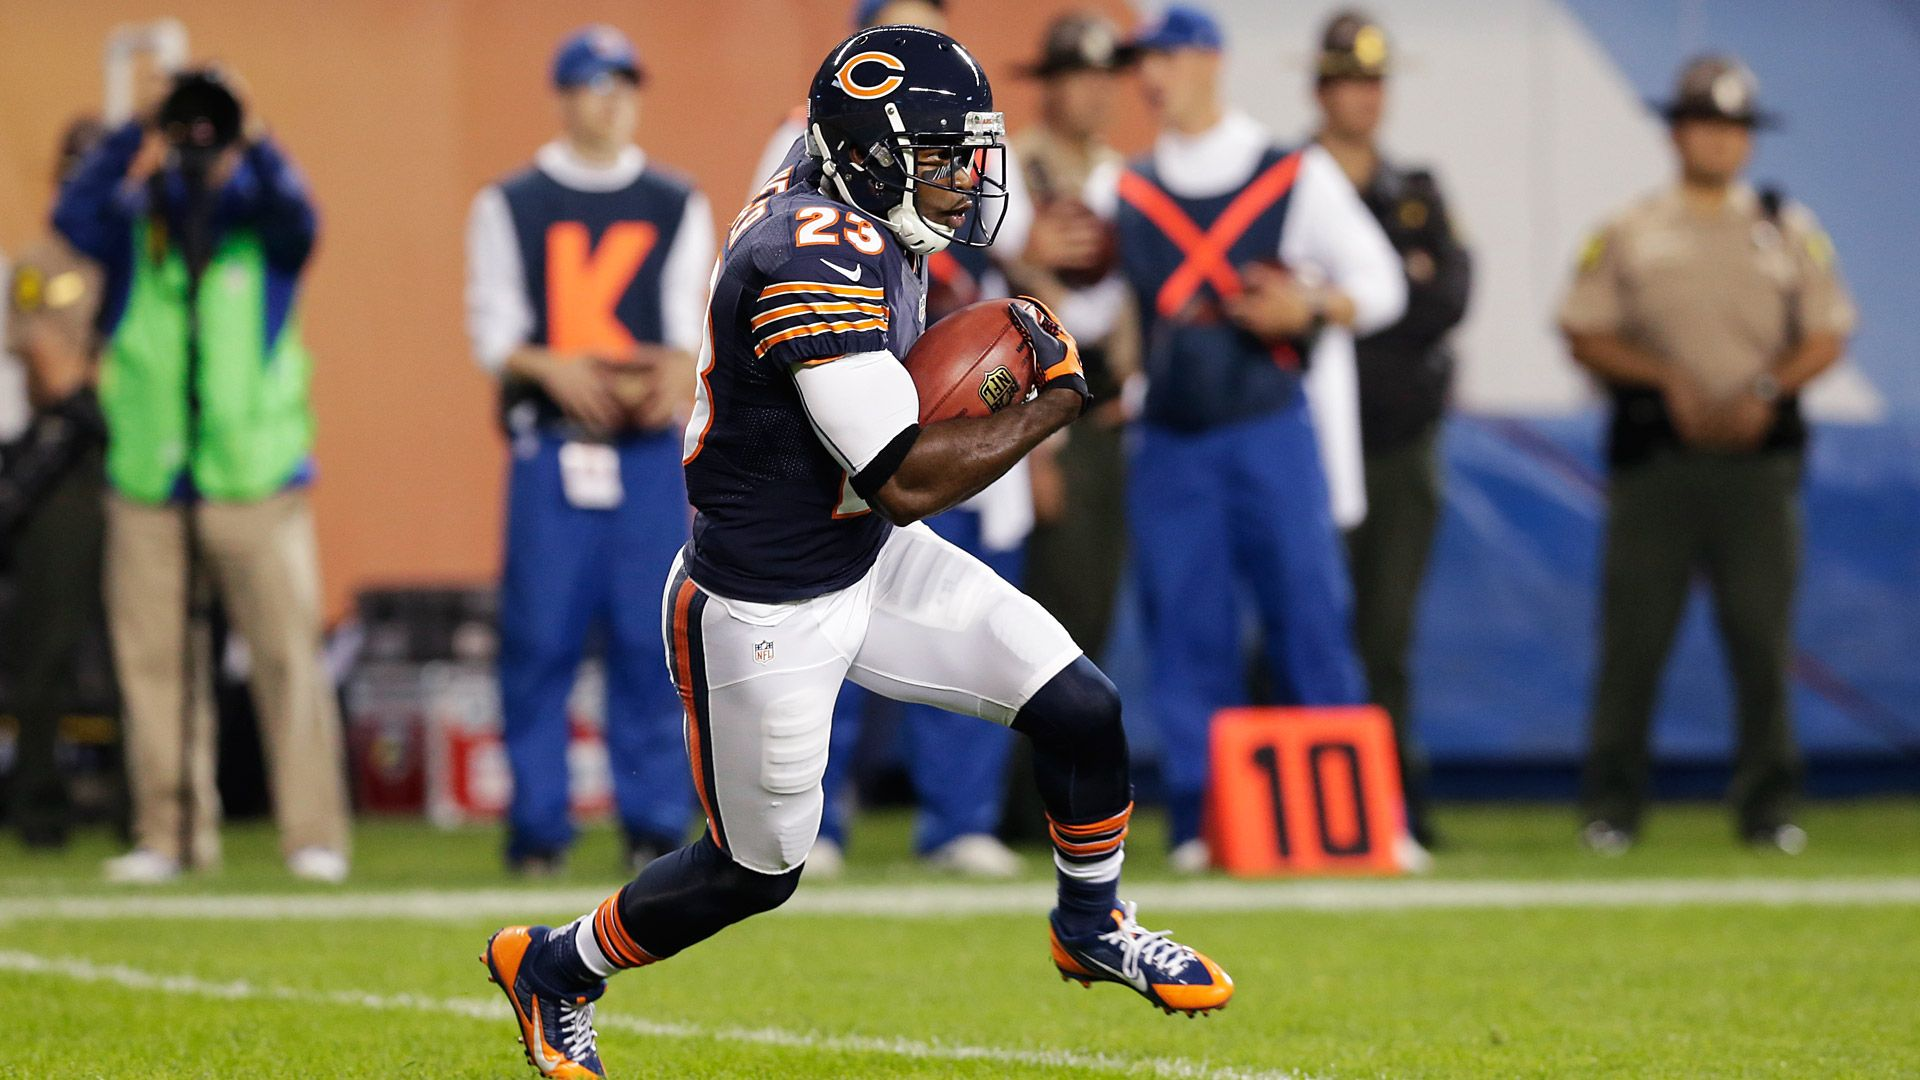 Devin Hester, who retired Monday with the Bears, scored a record 20 touchdowns on returns during his career. He doesn't want to see the NFL do away with the kickoff, saying